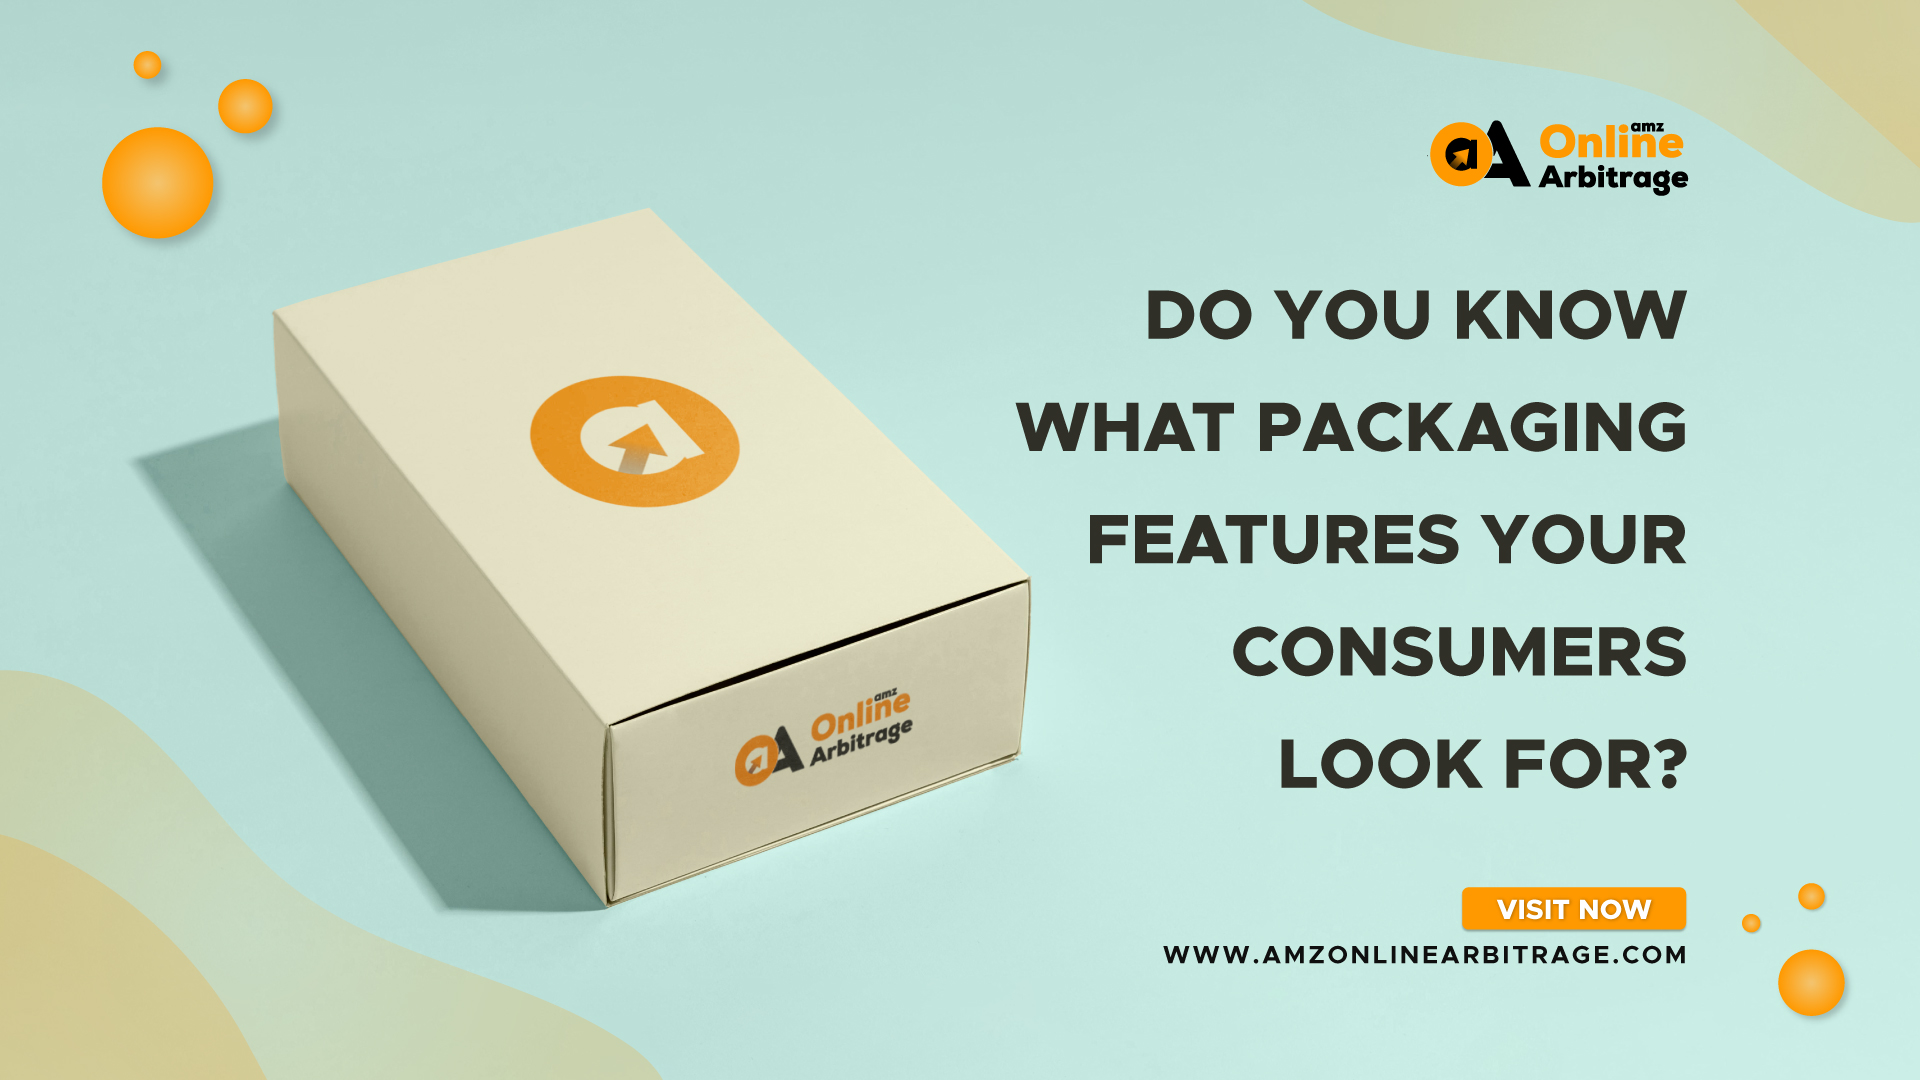 DO YOU KNOW WHAT PACKAGING FEATURES YOUR CONSUMERS LOOK FOR ?